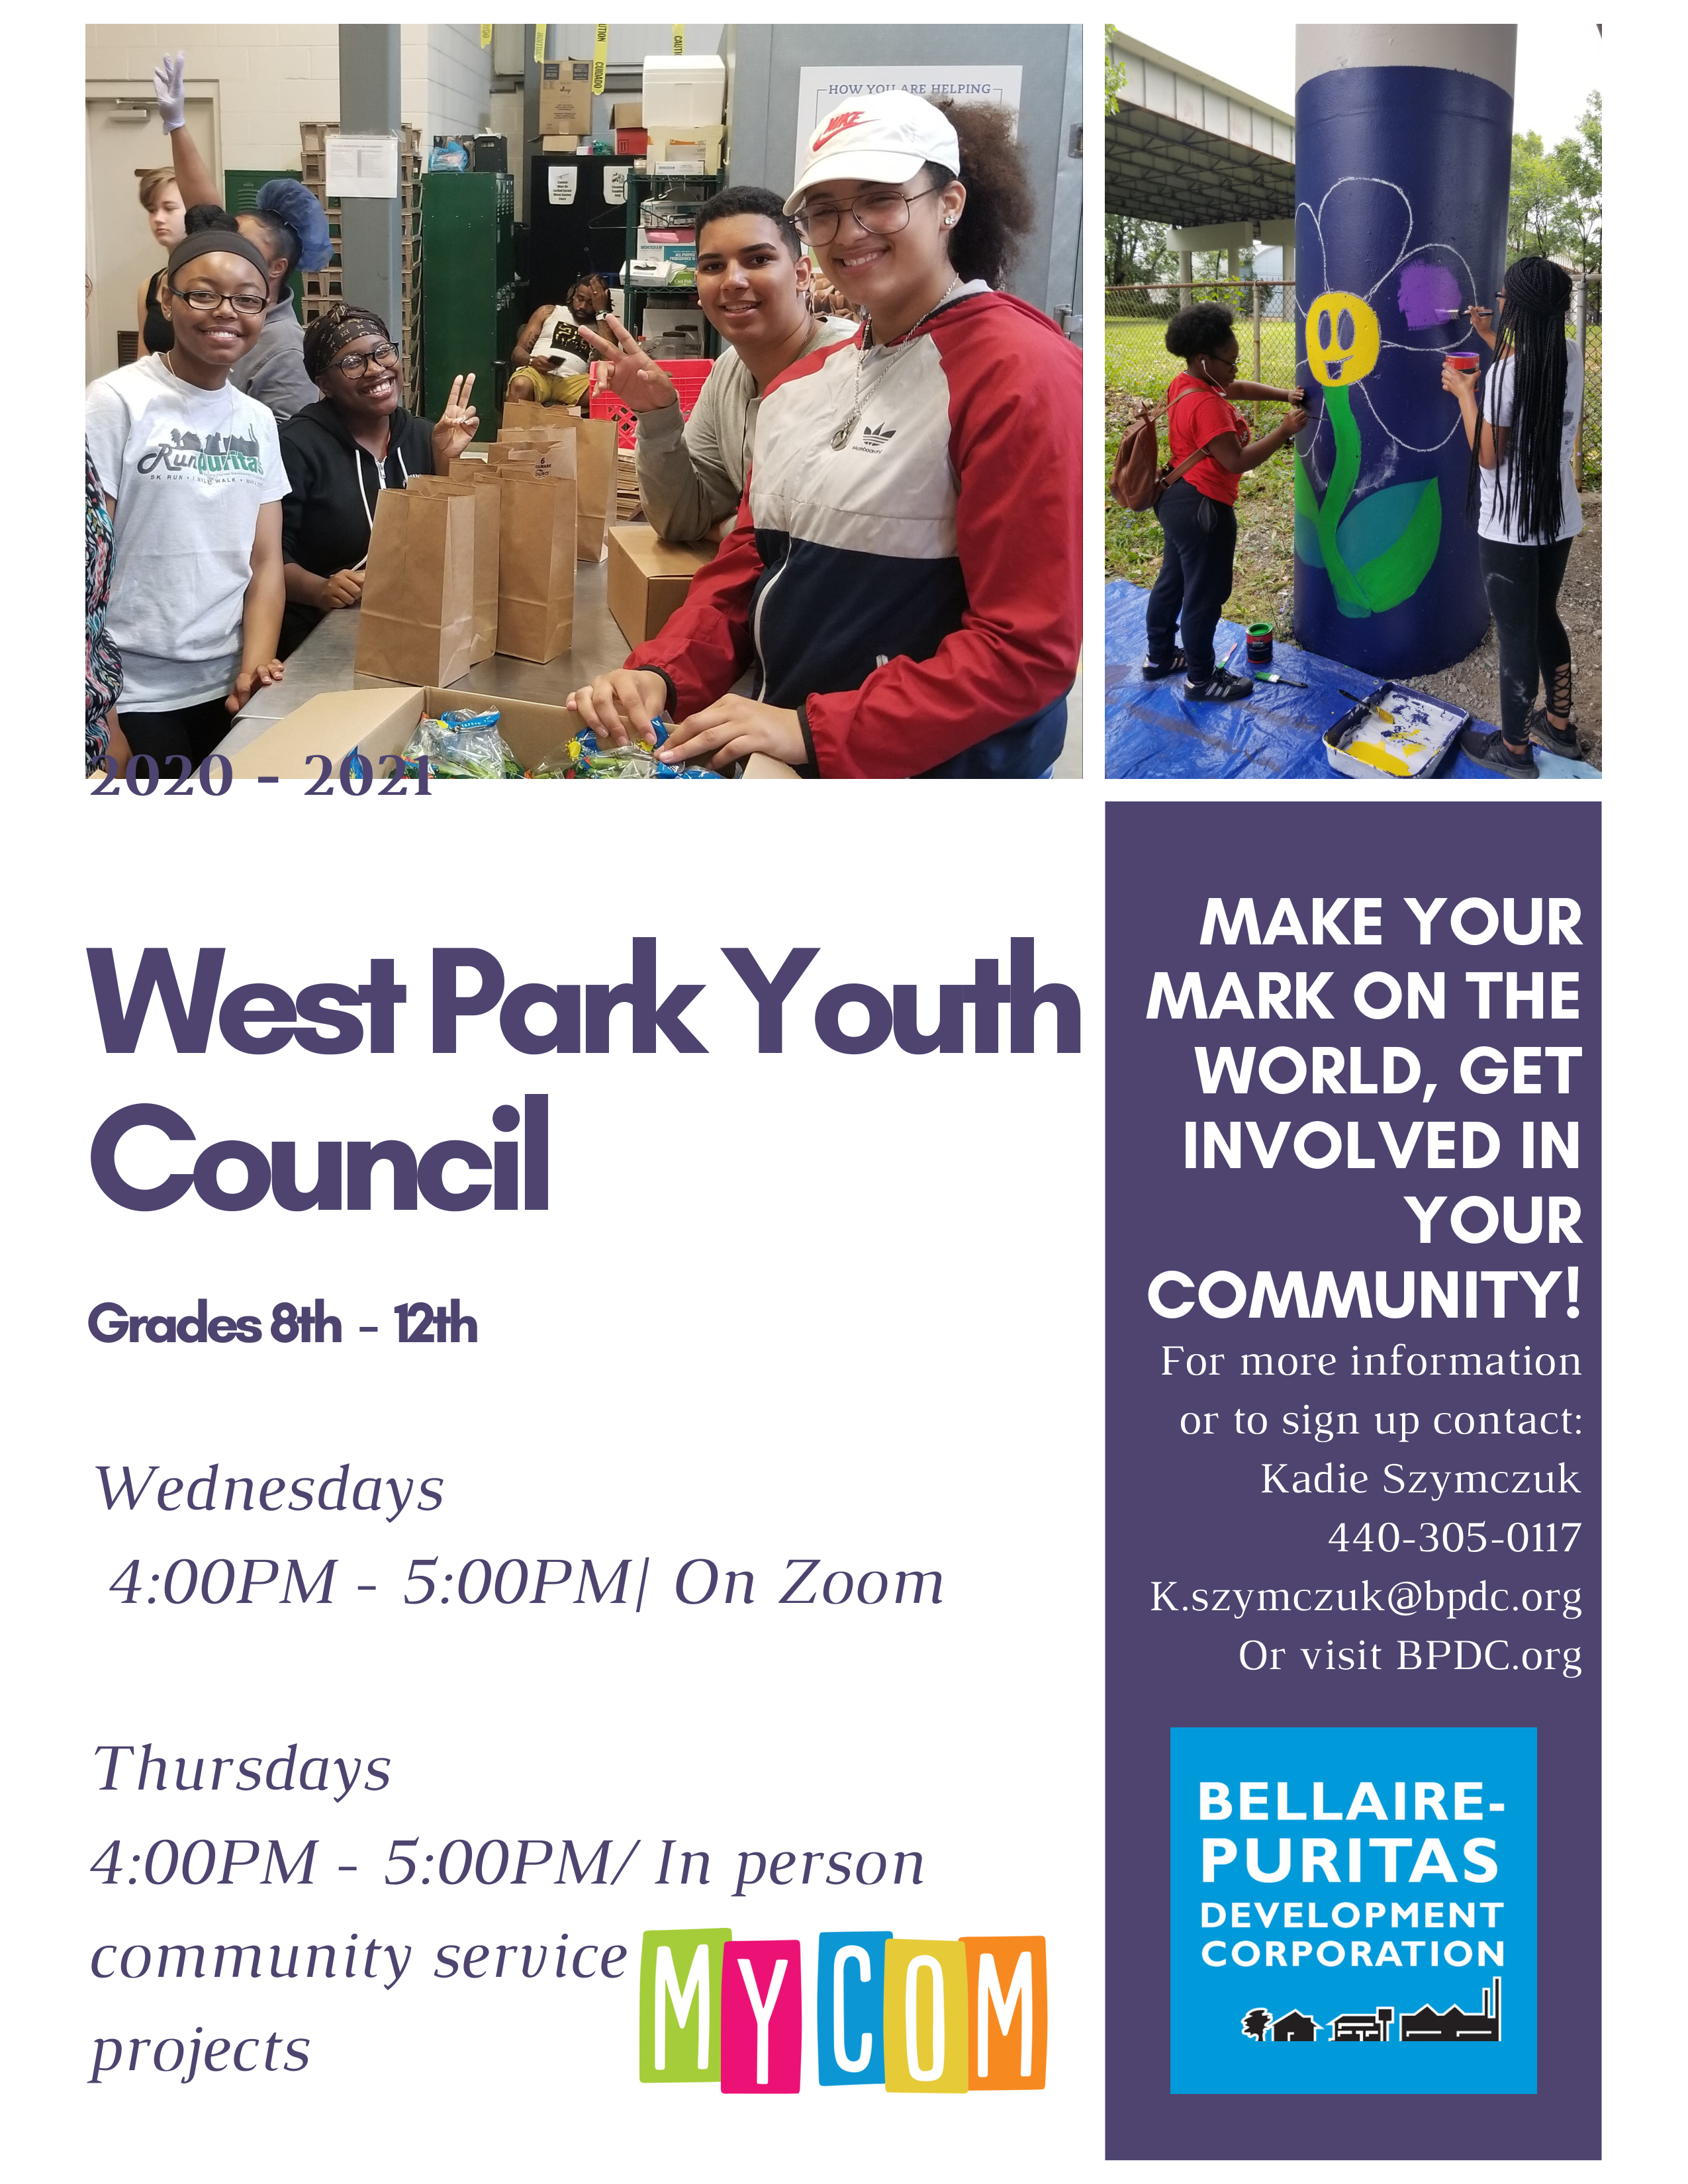 West Park Youth Council